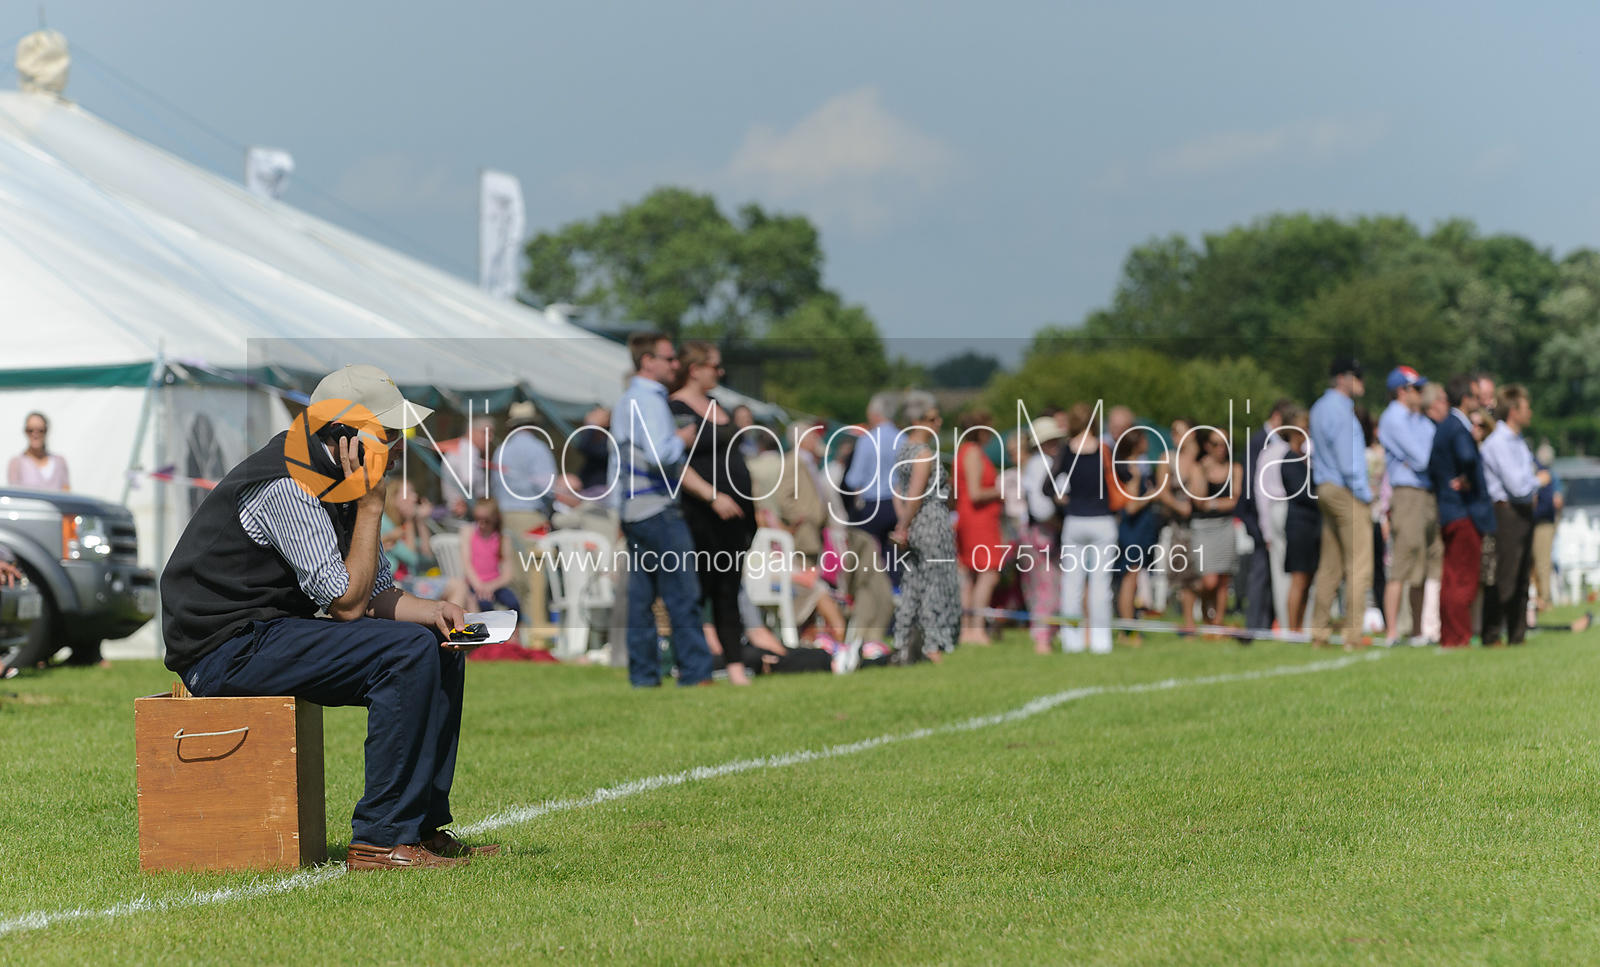 Henry Browne and Assam crowds - Assam Cup - Rutland Polo Club, 30th Jun 2013.